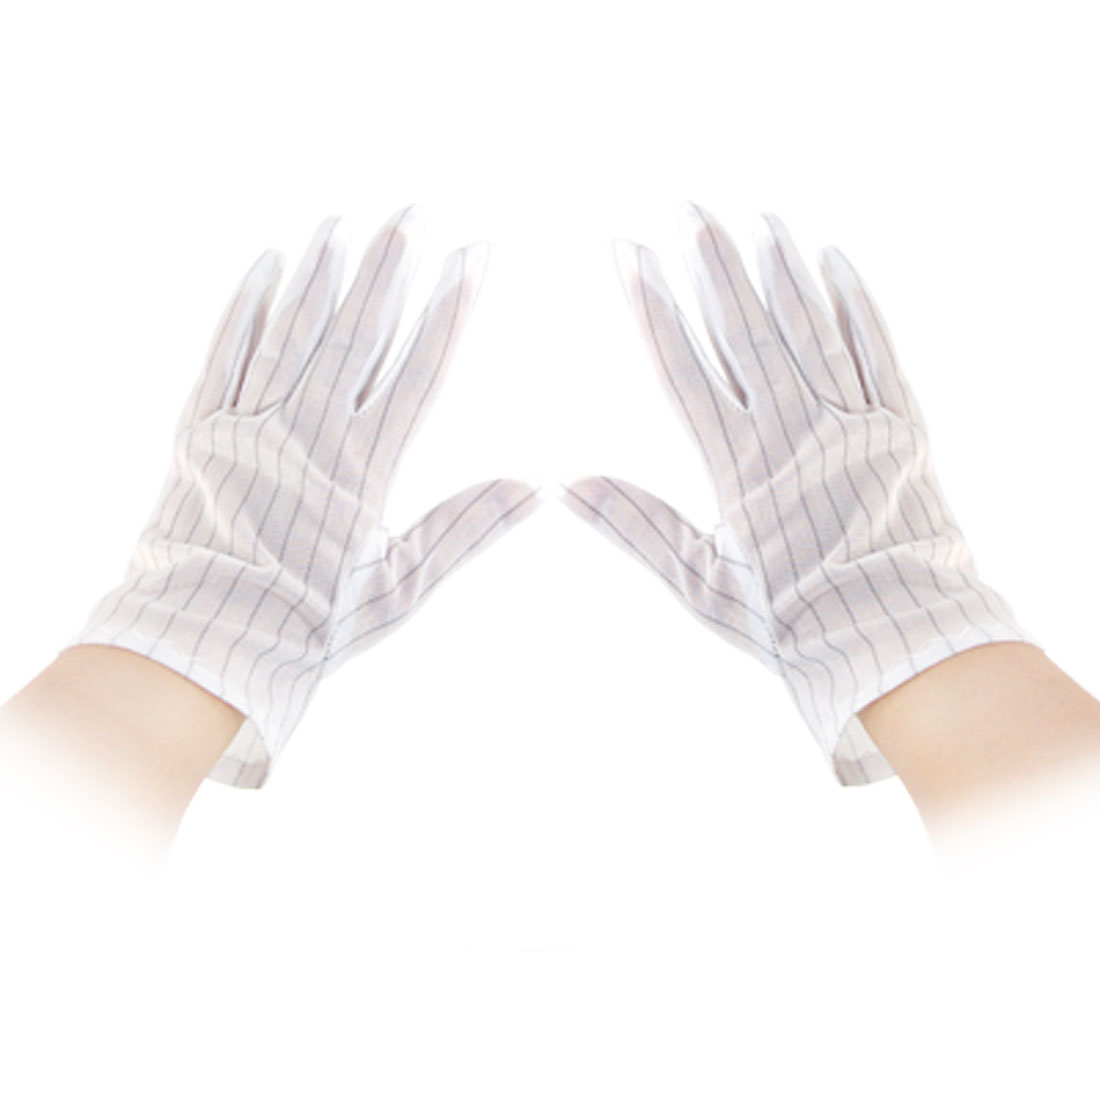 5 Pairs Stripe Pattern Anti-static Working Gloves White Size M